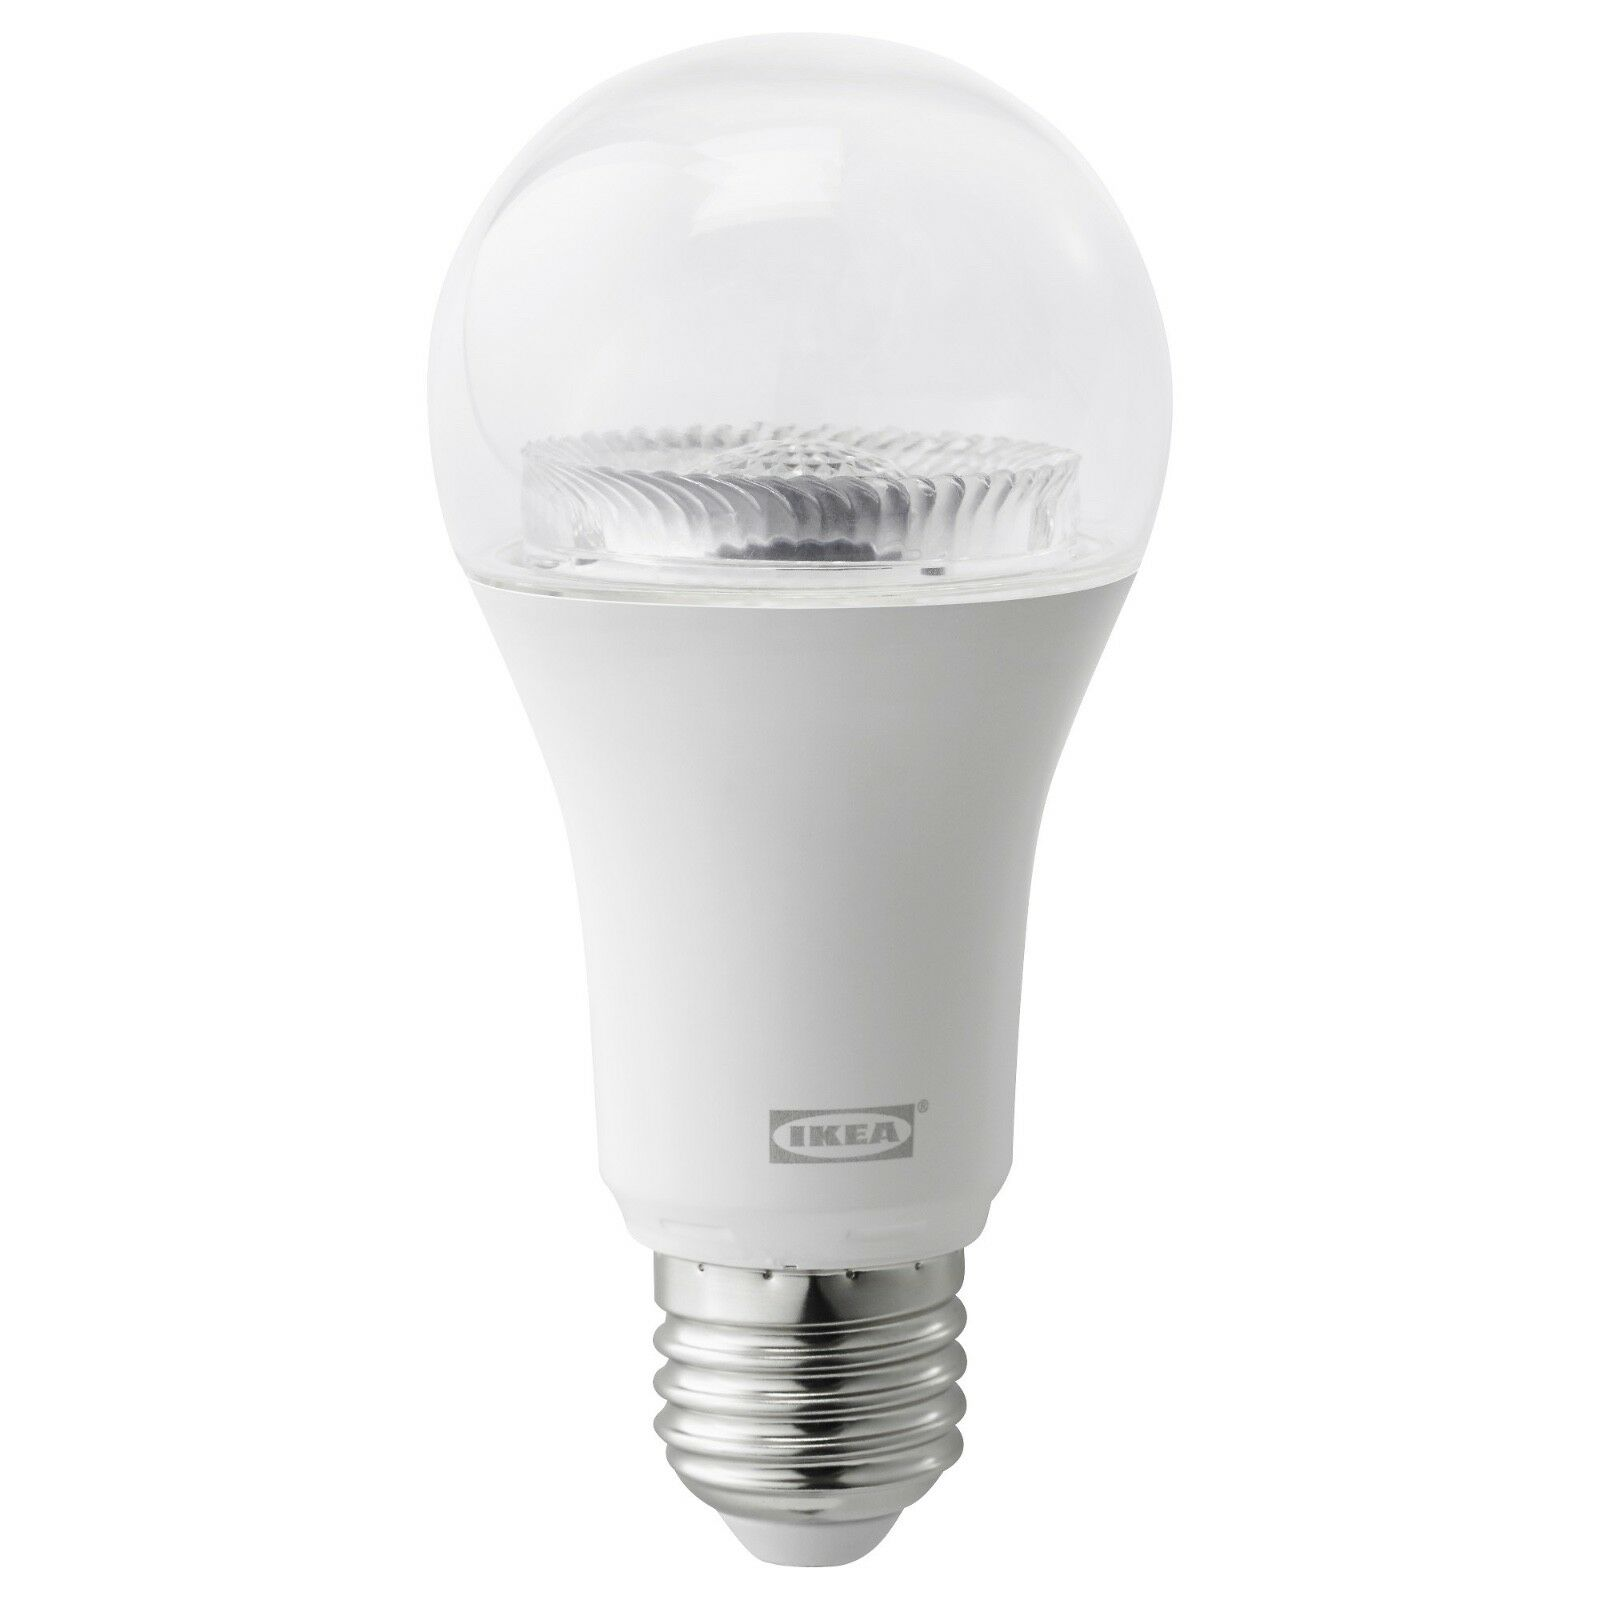 IKEA TRÅDFRI Smart Lighting LED Bulb E27 950 Lm Wireless Dimmable White Spectrum